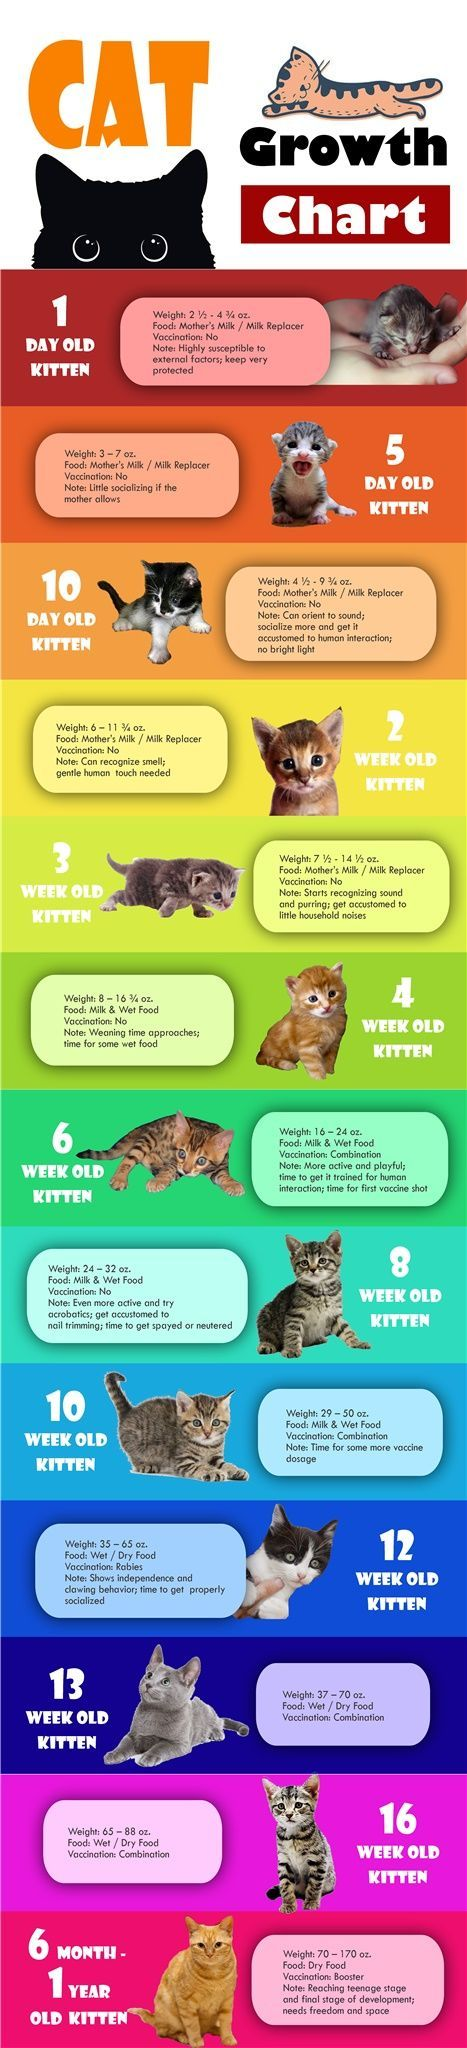 Infographic Kitten Cat Growth Chart By Age Weight And Food Source Http Best1x Com Kitten Cat Growth Chart Cat Infographic Kitten Kitten Care